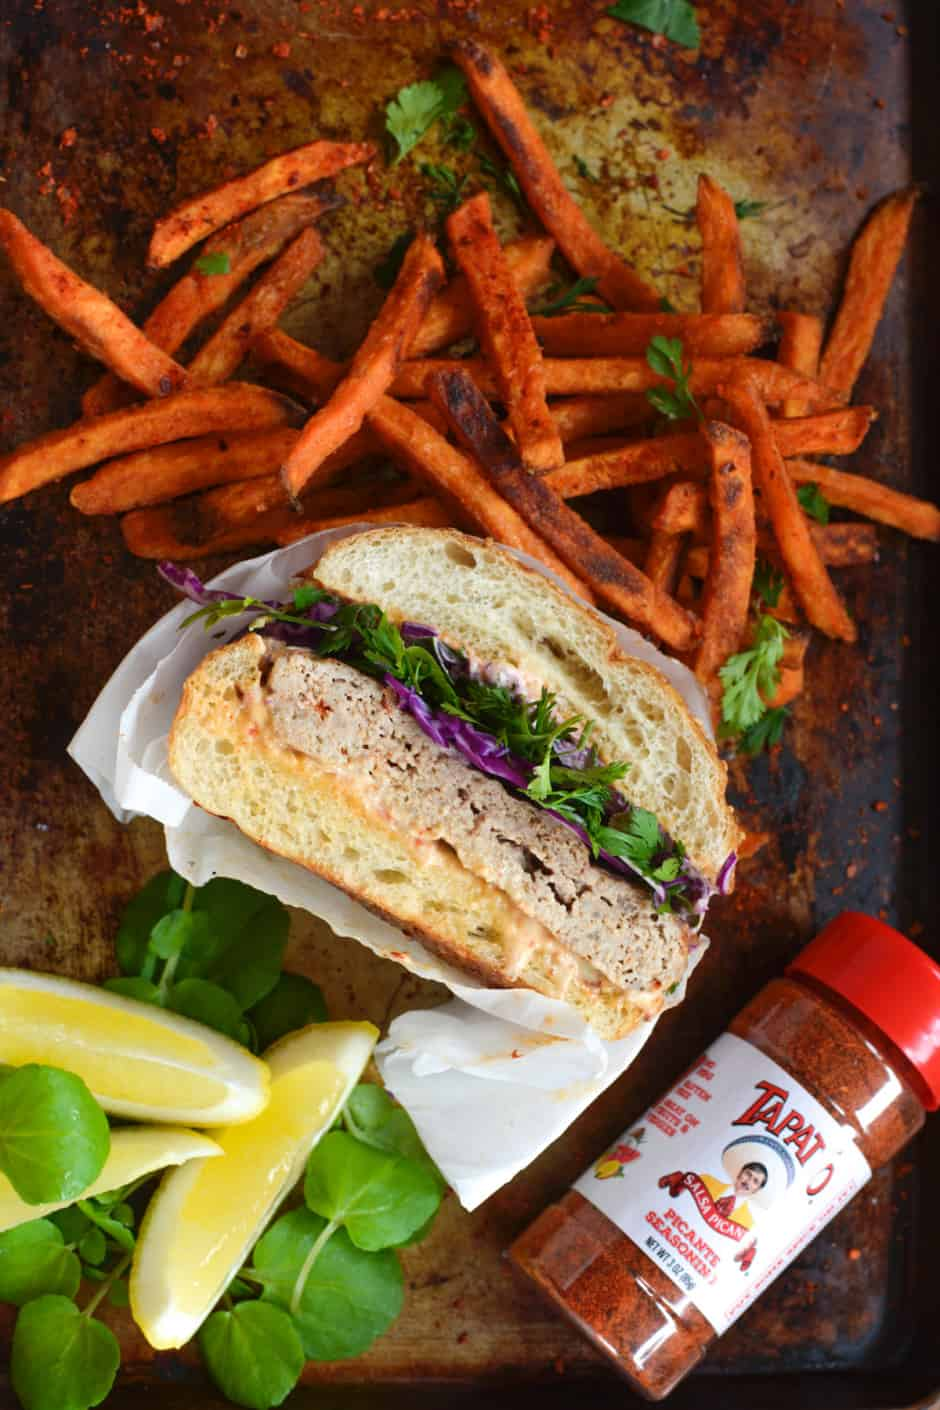 The BEST Turkey Burger recipe! This one is anything but boring, seasoned with Tapatio hot sauce, a simple spice blend, and Worcestershire with a little spicy mayo on top to boot. Serve the turkey burger with sweet potato fries and a simple Cilantro-Lime Slaw for an easy, healthy, and delicious dinner. #turkeyburgerrecipe #turkeyburger #spicyturkeyburger #tapatio